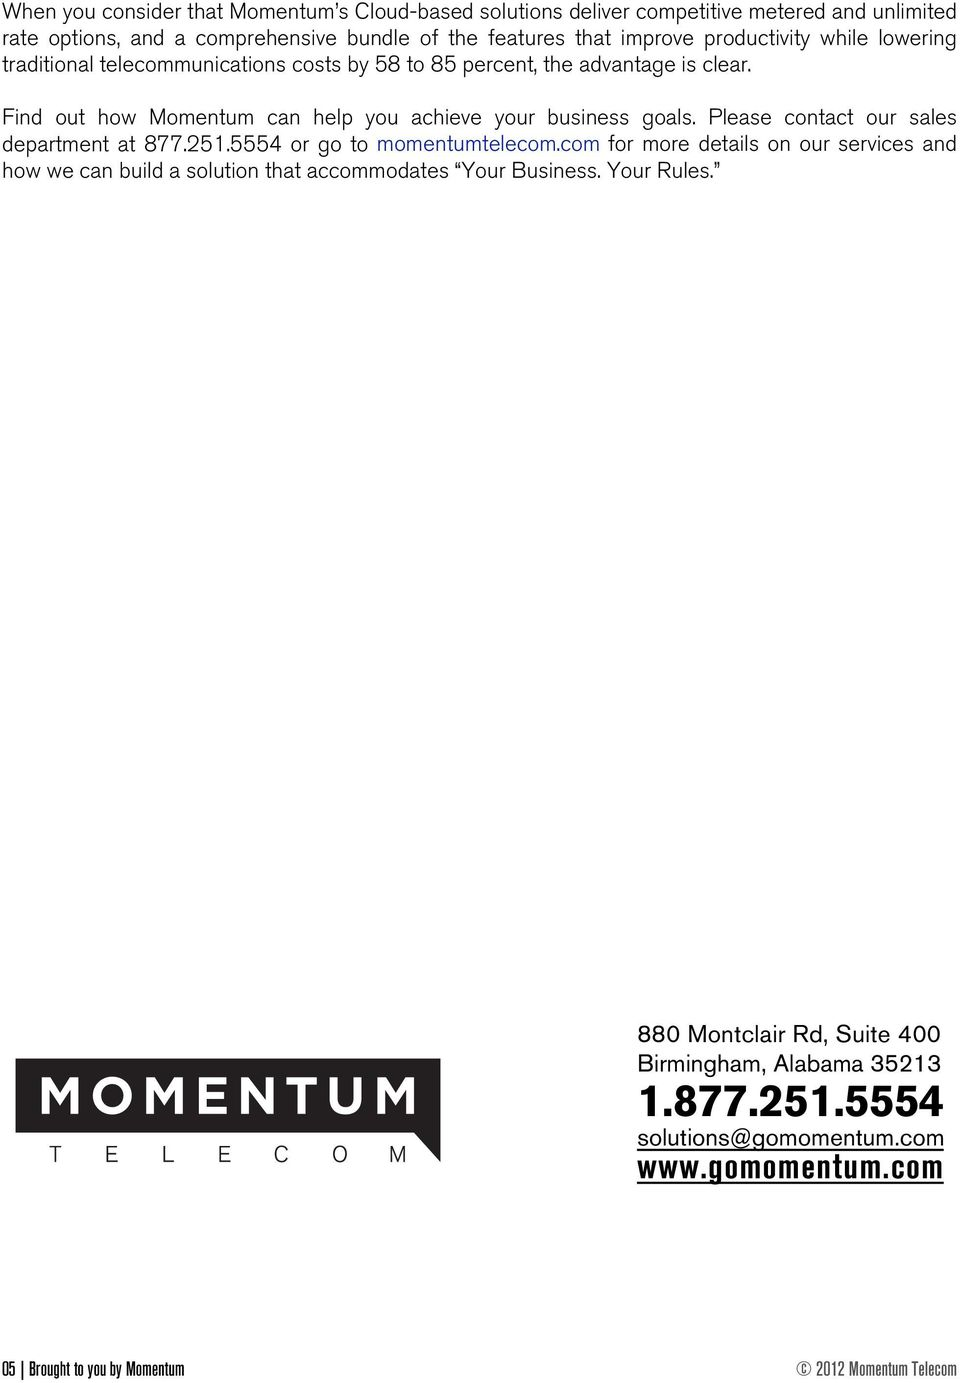 Please contact our sales department at 877.251.5554 or go to momentumtelecom.